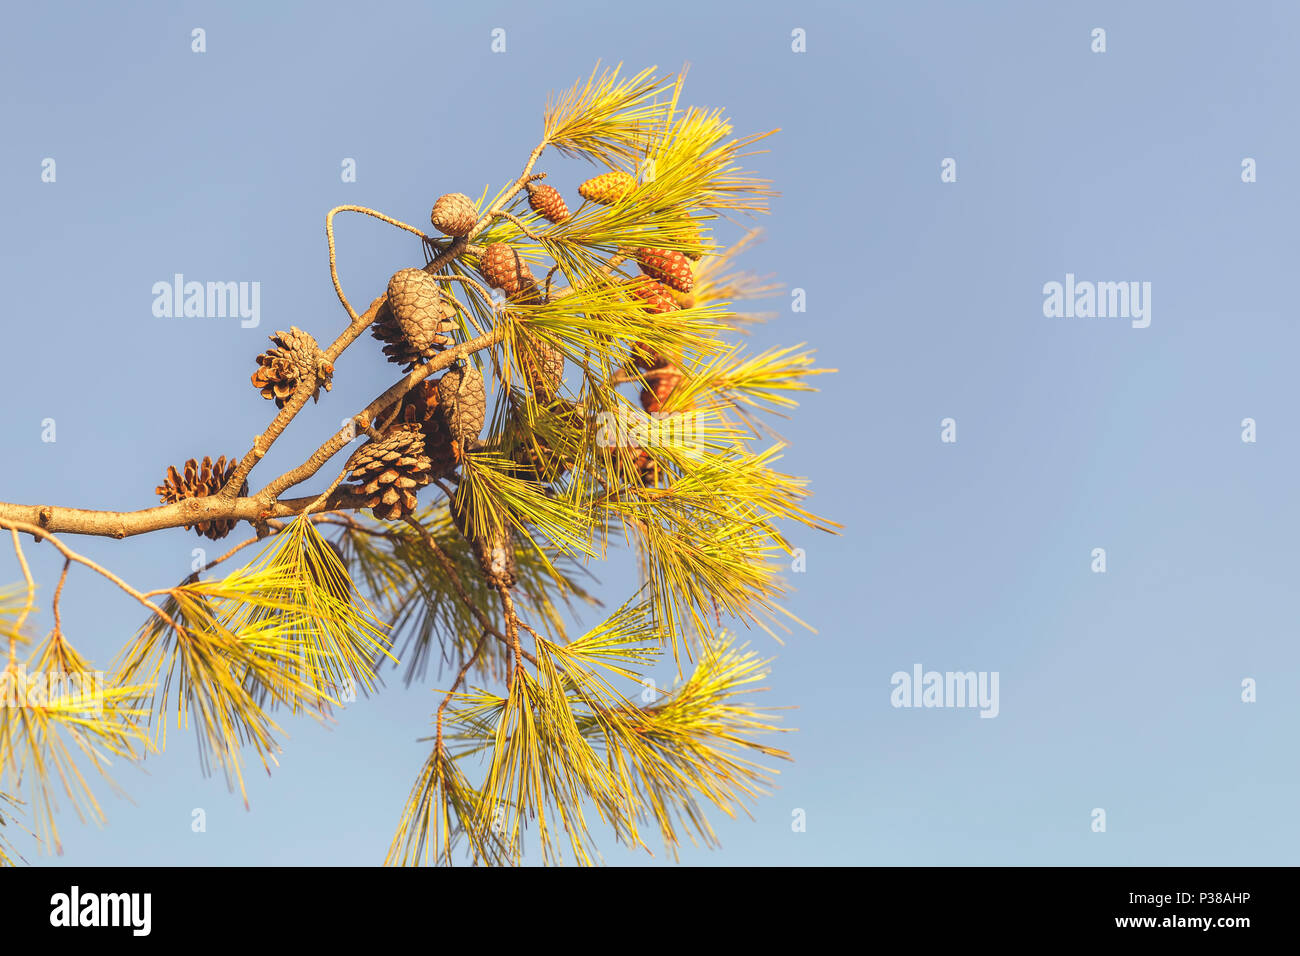 Pine branch with cones on sky background with textspace. Vintage style. - Stock Image